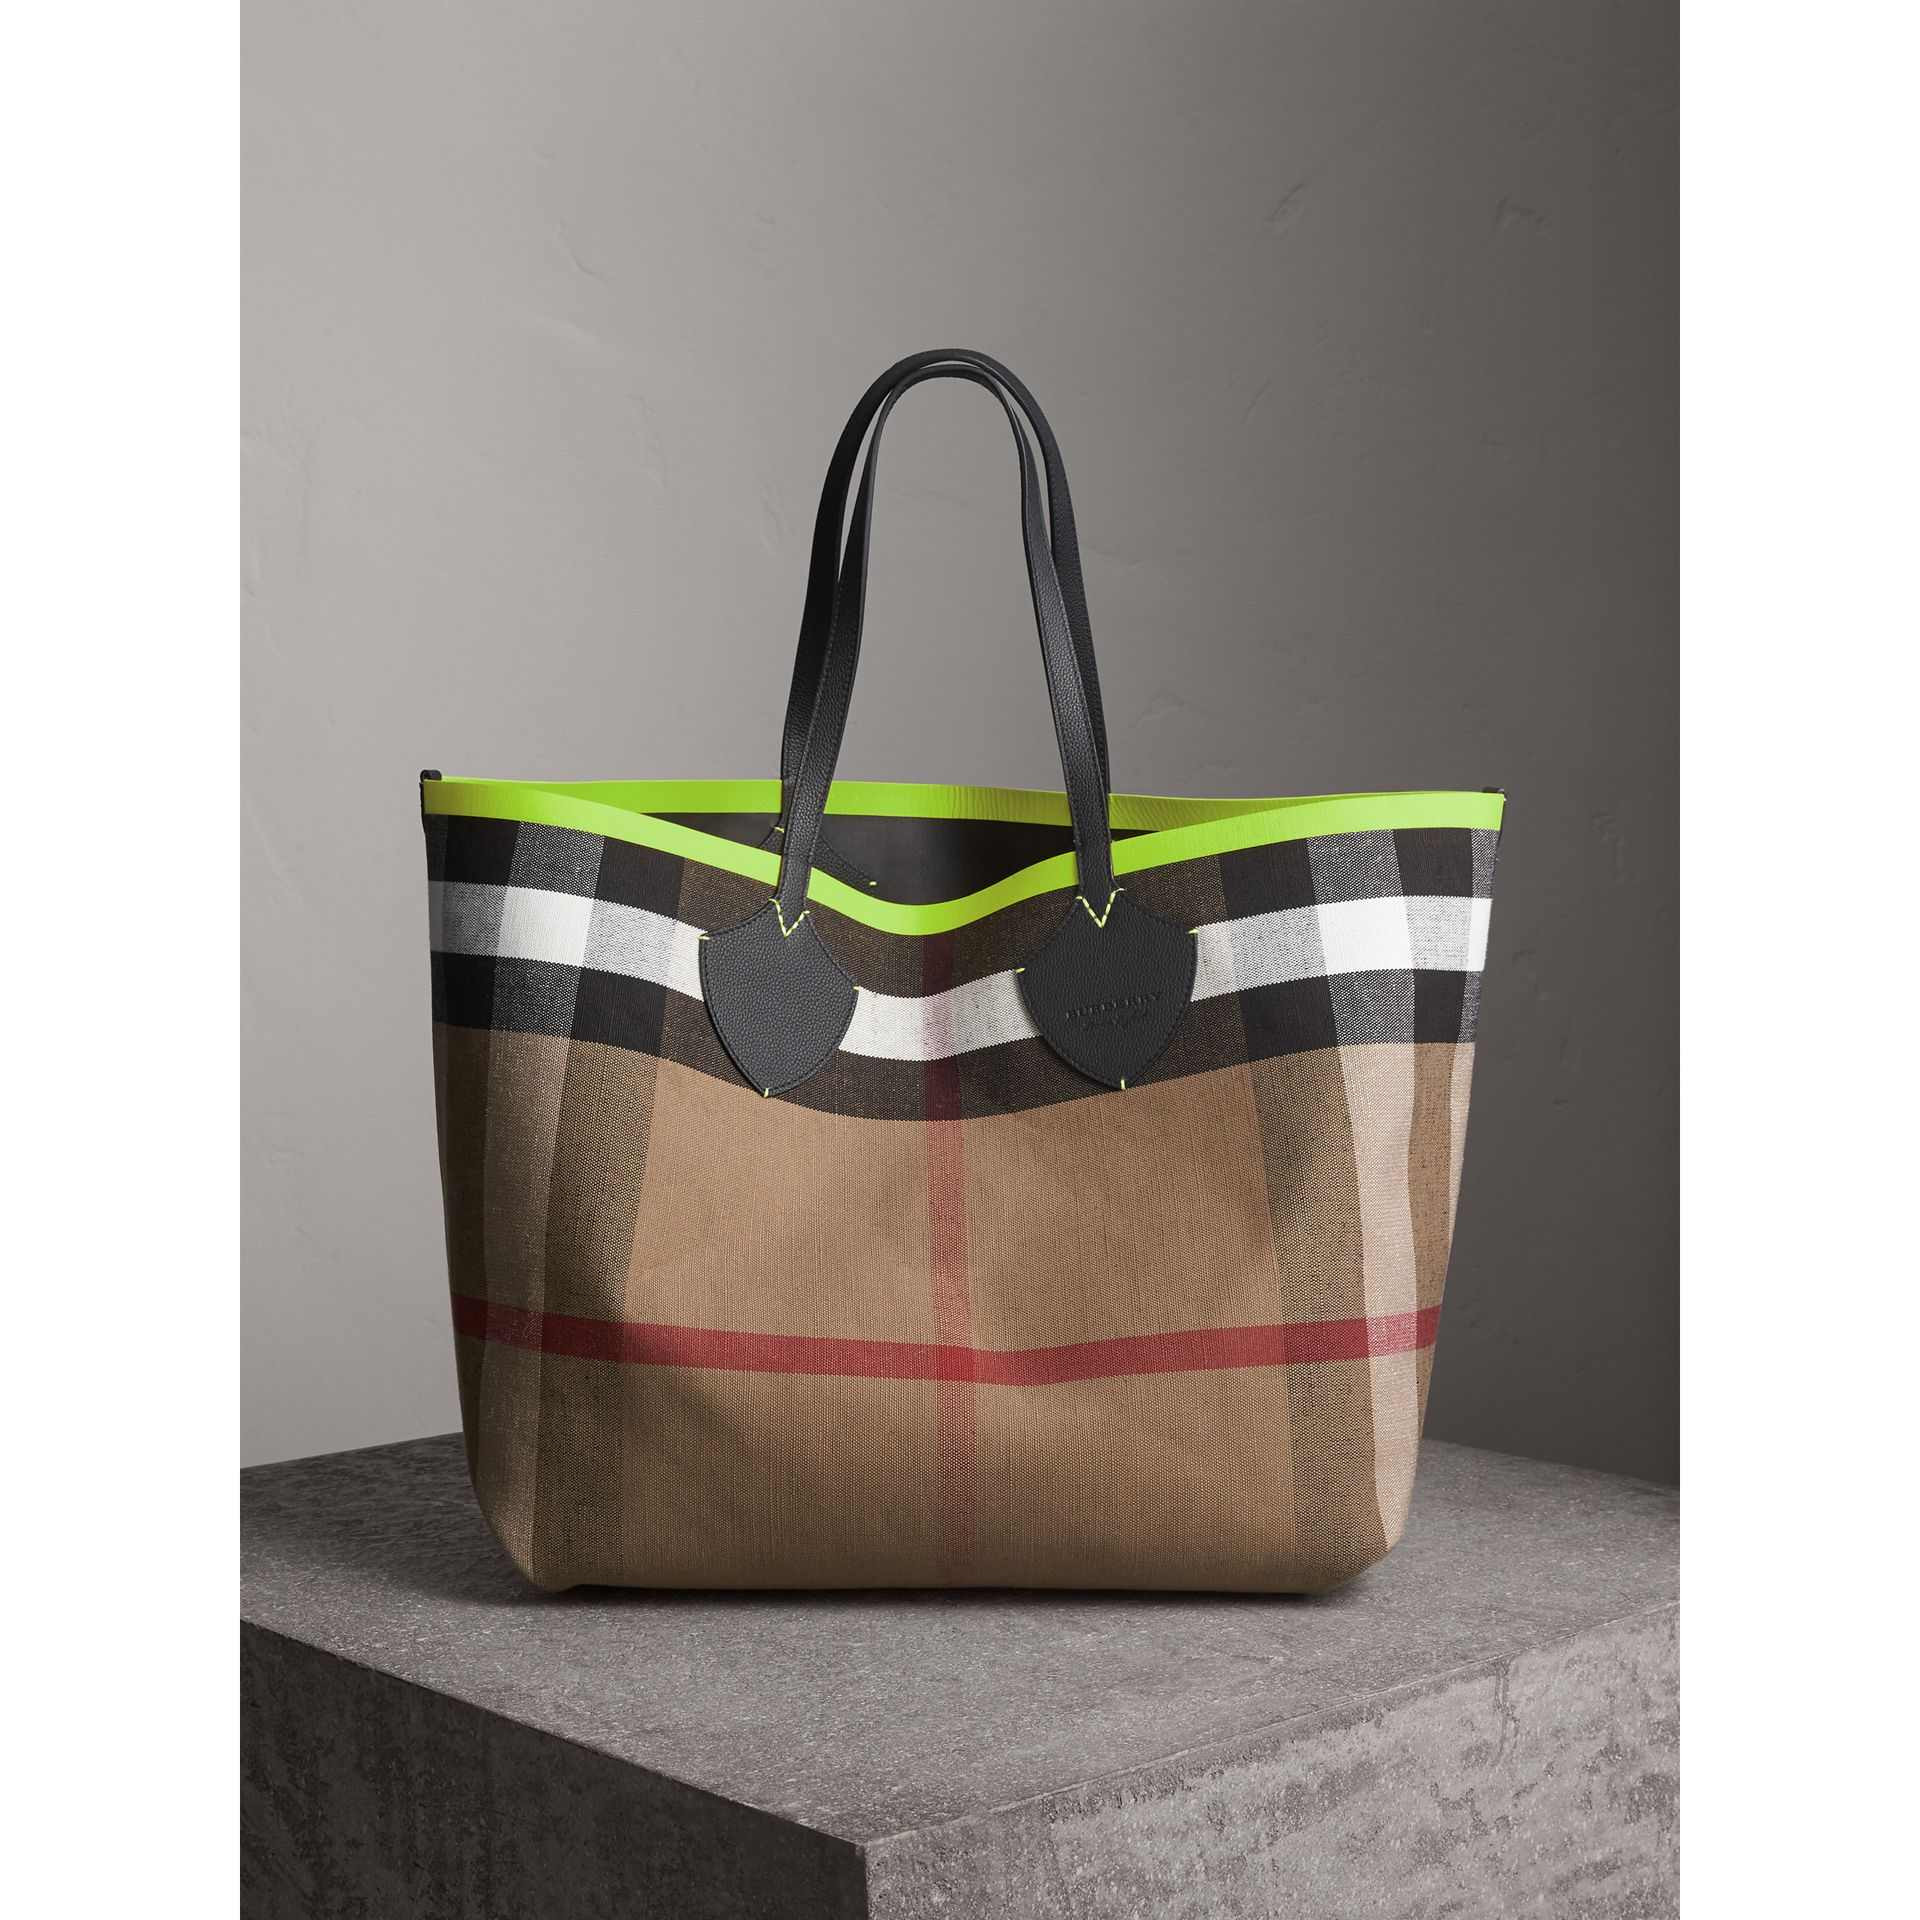 Sac tote The Giant réversible en cuir et coton Canvas check (Noir/jaune Néon) | Burberry Canada - photo de la galerie 7